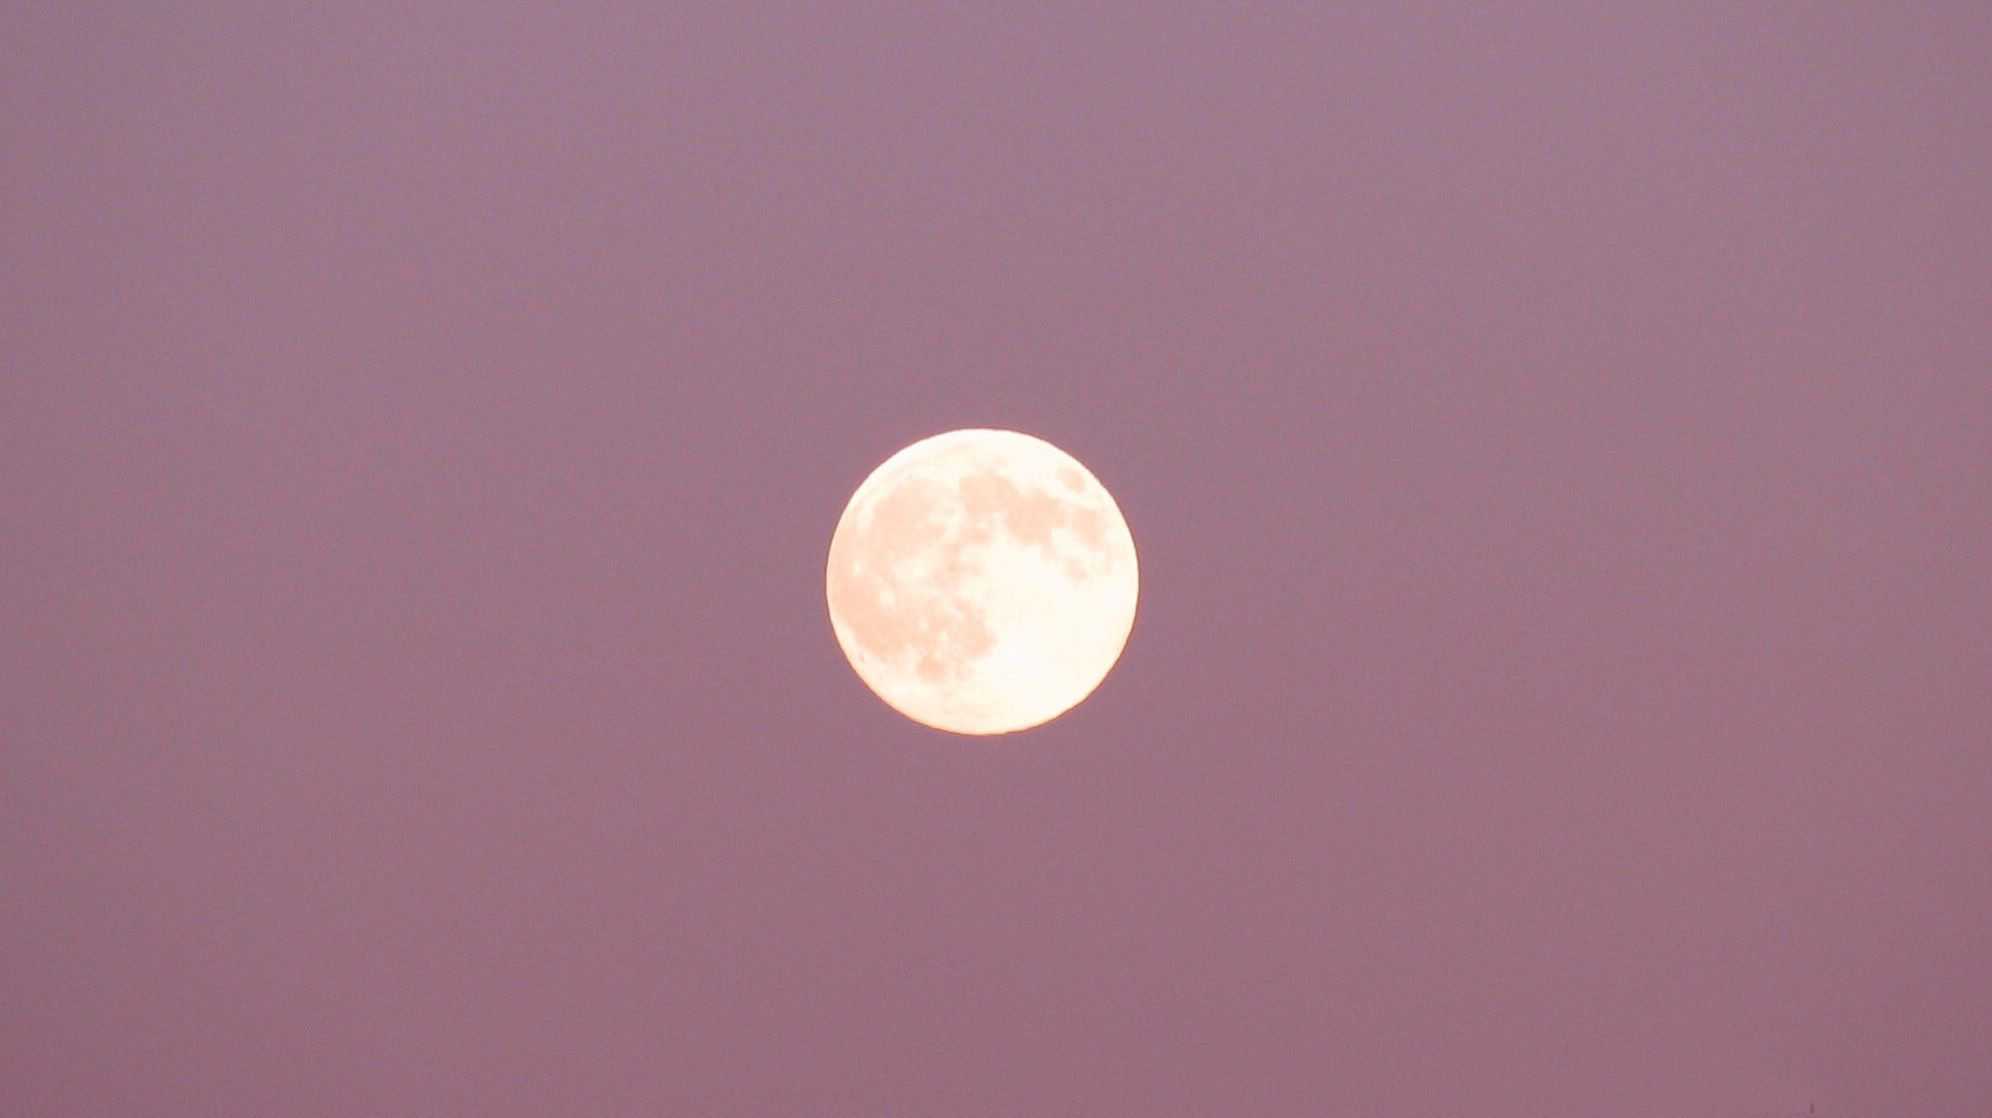 A Full Pink Moon Is Coming in April | Mental Floss